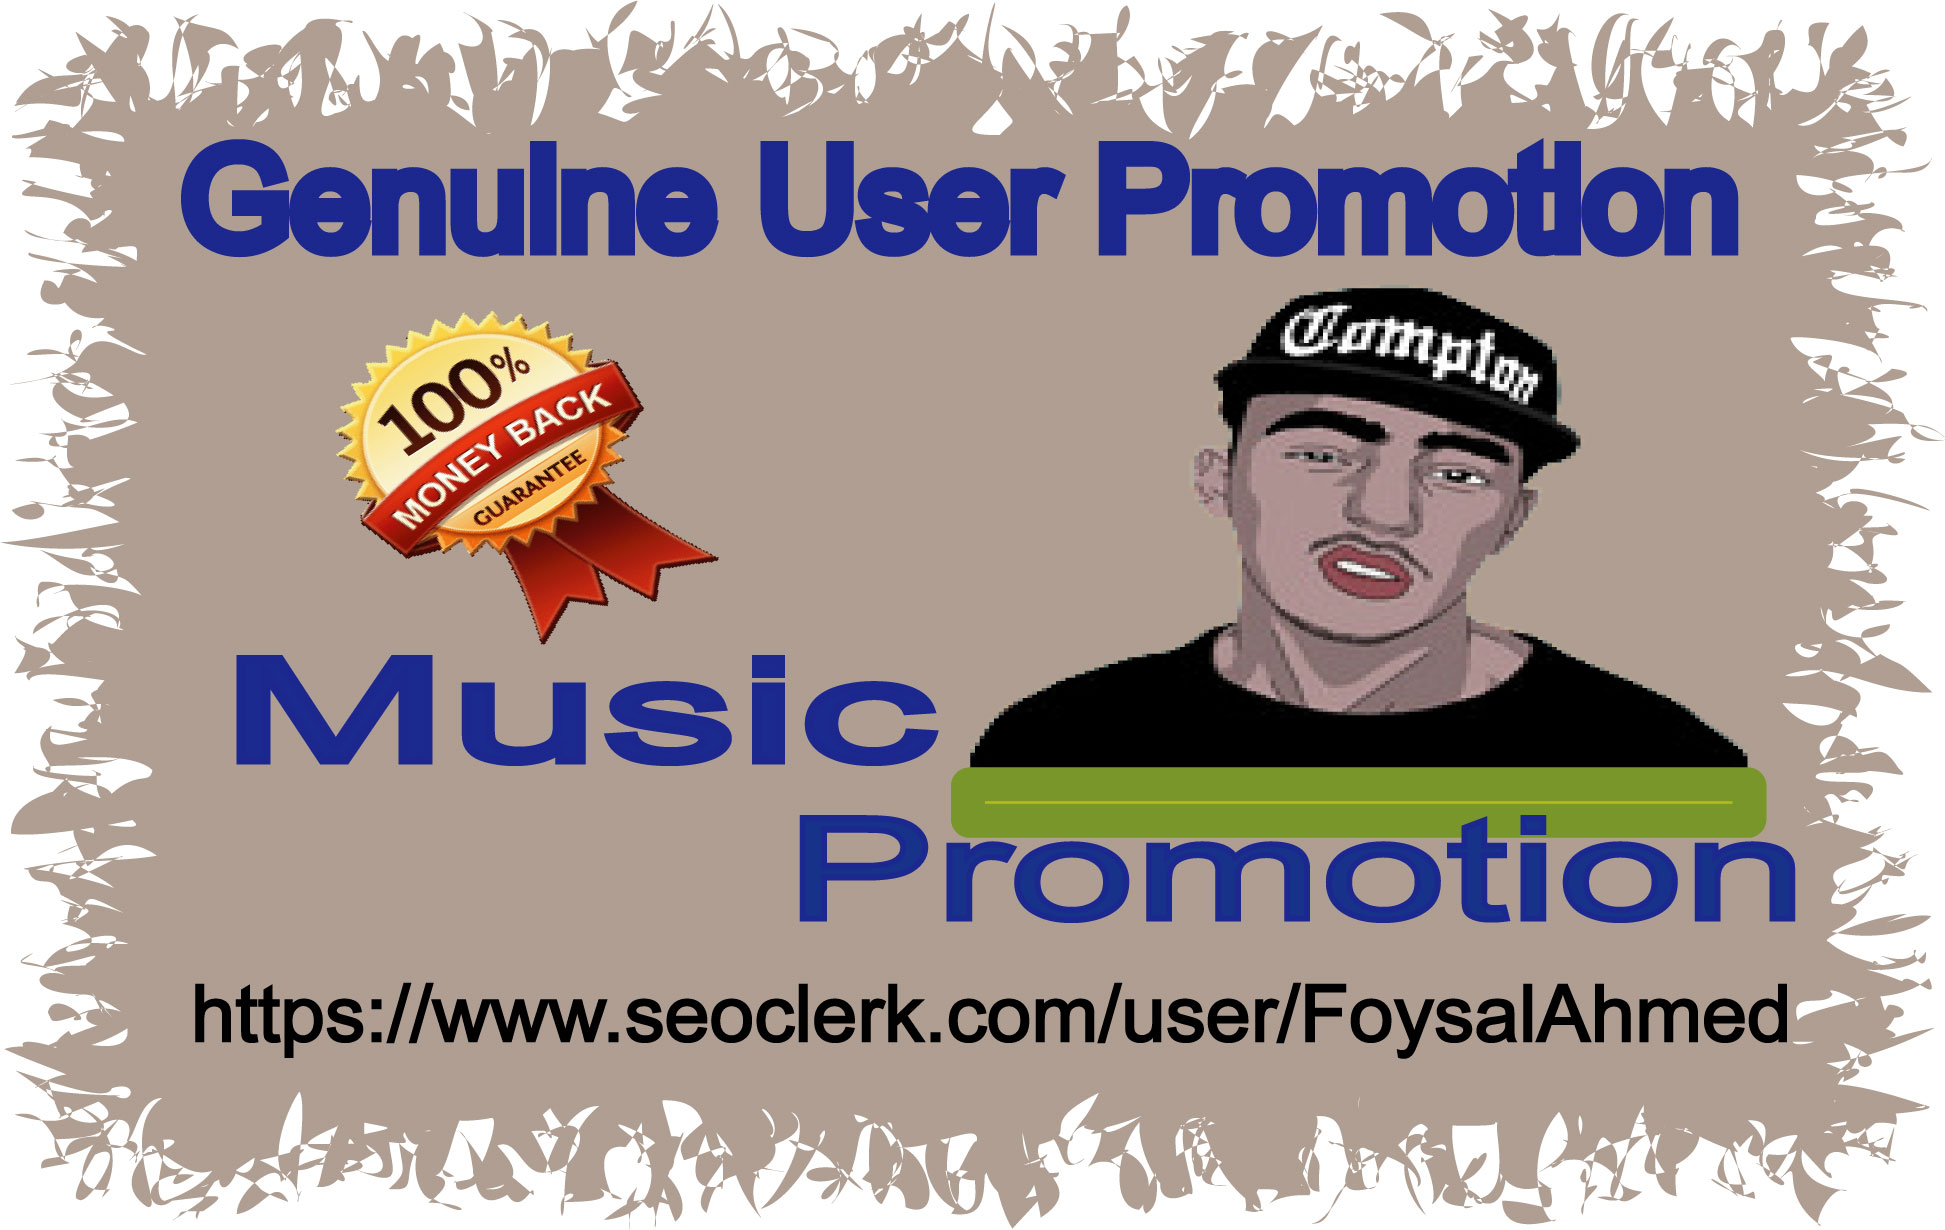 Music Promotion 405K Music Play 300 Llke & 300 Re-post & 25 C0mments For Your Music Track